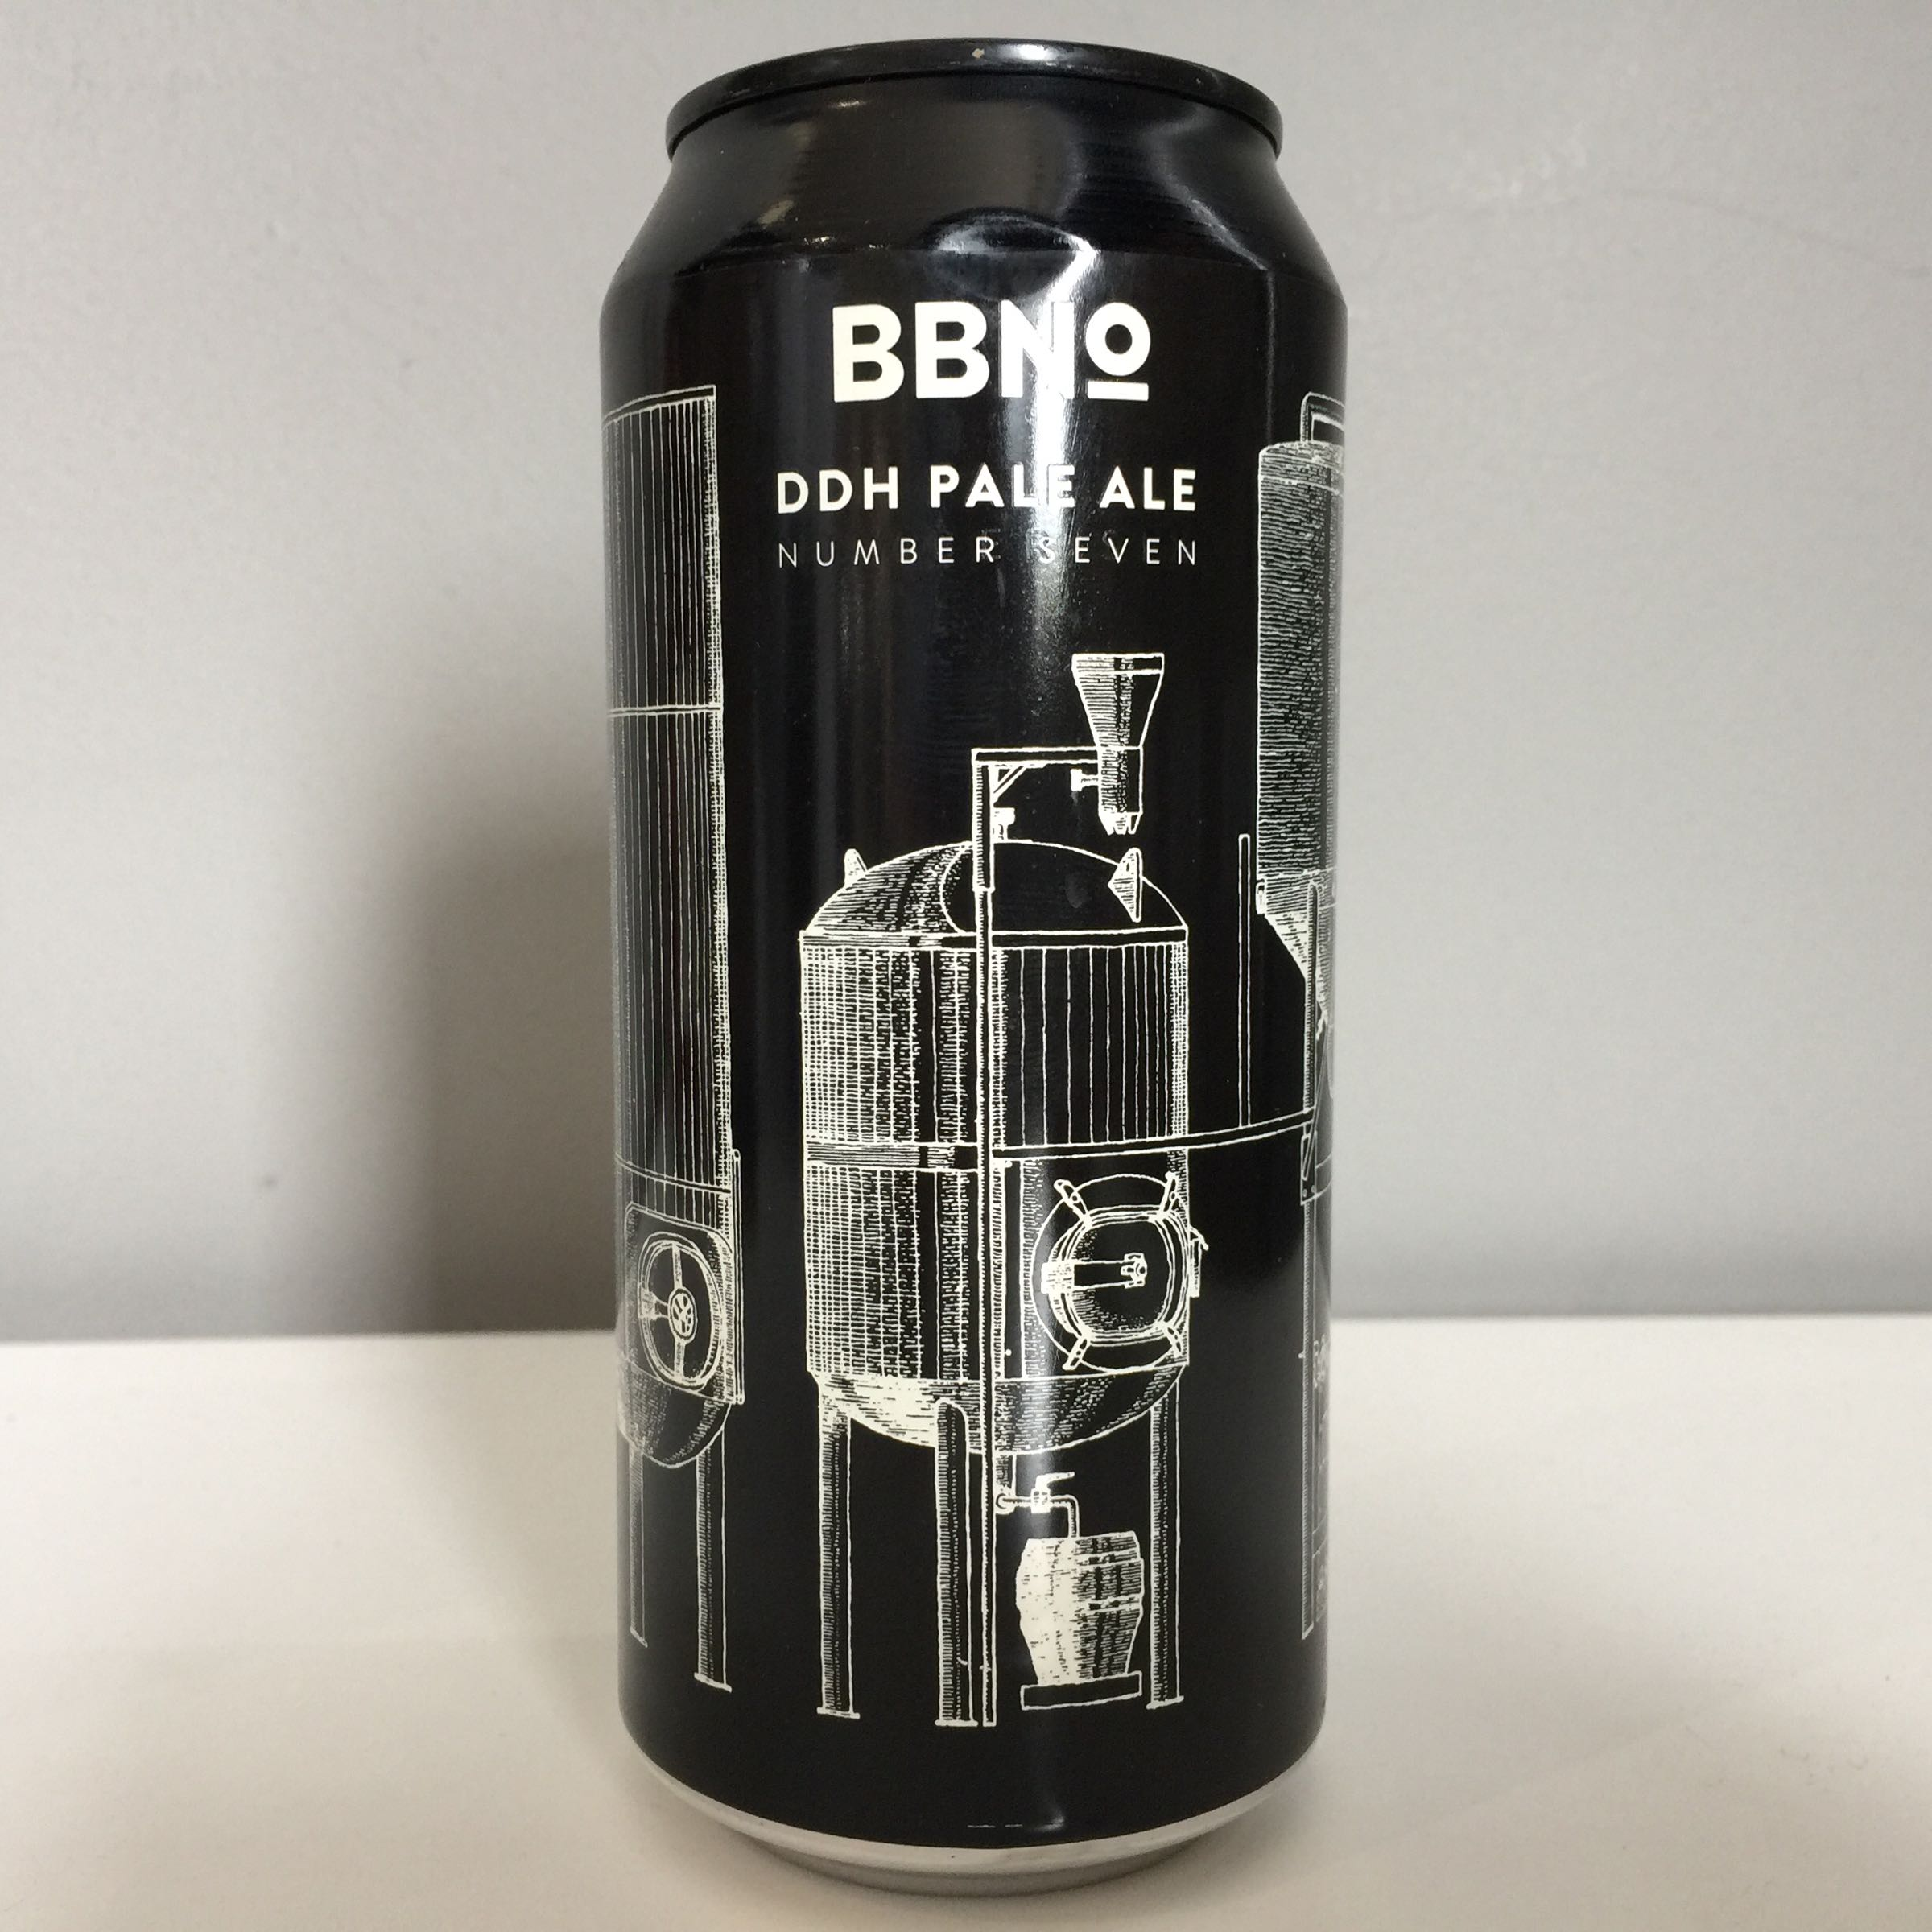 Brew By Numbers '42' DDH Pale Ale - Number 7 440ml 5.5% ABV